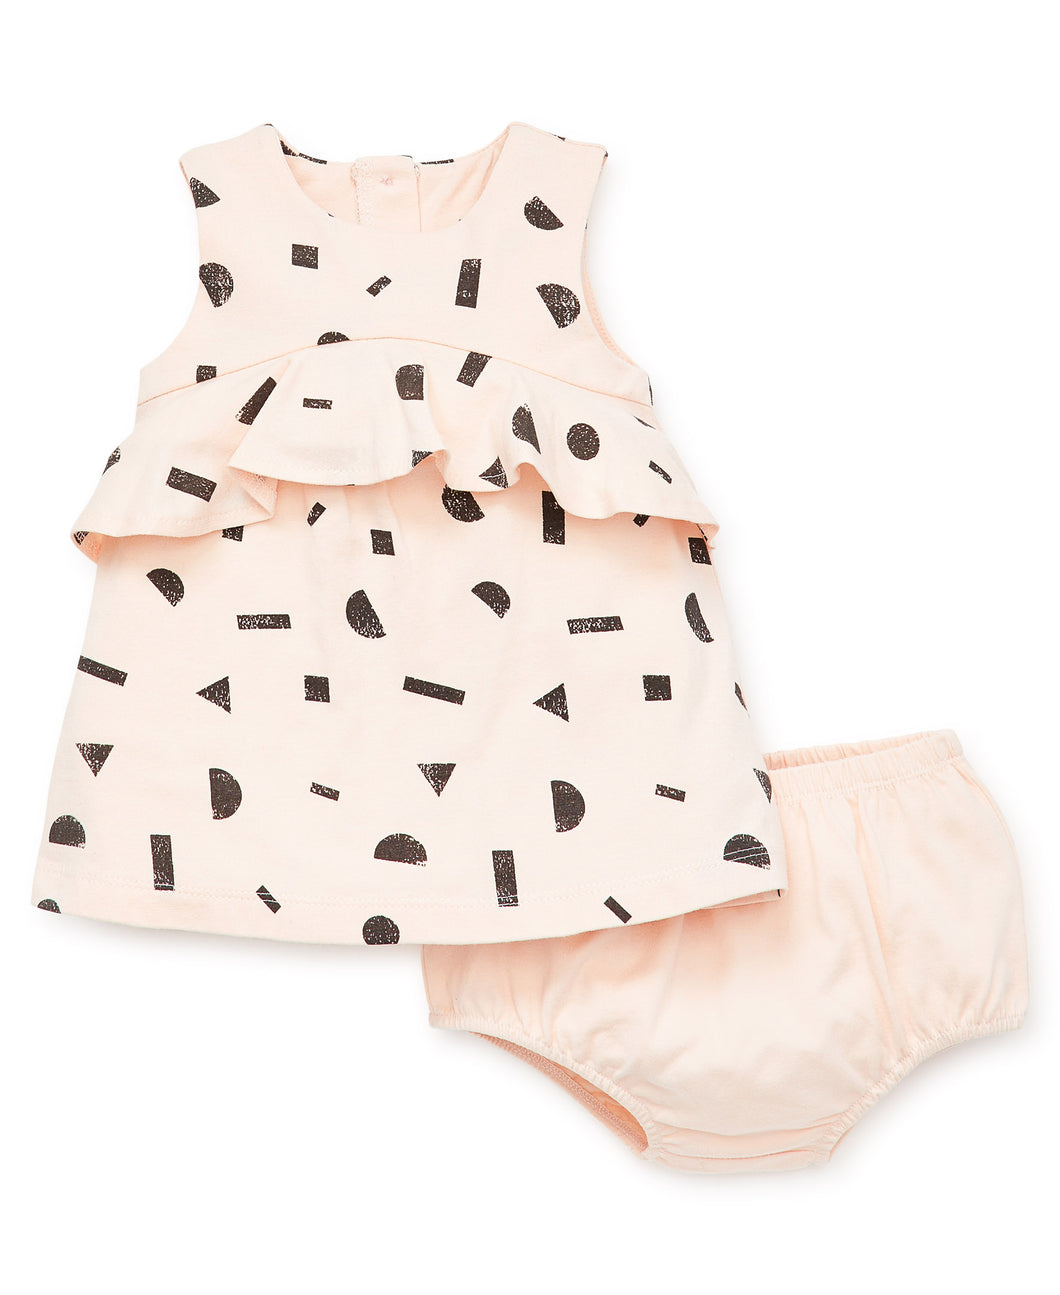 Focus Kids Safari Dress Set - Bloom Kids Collection - Focus Kids